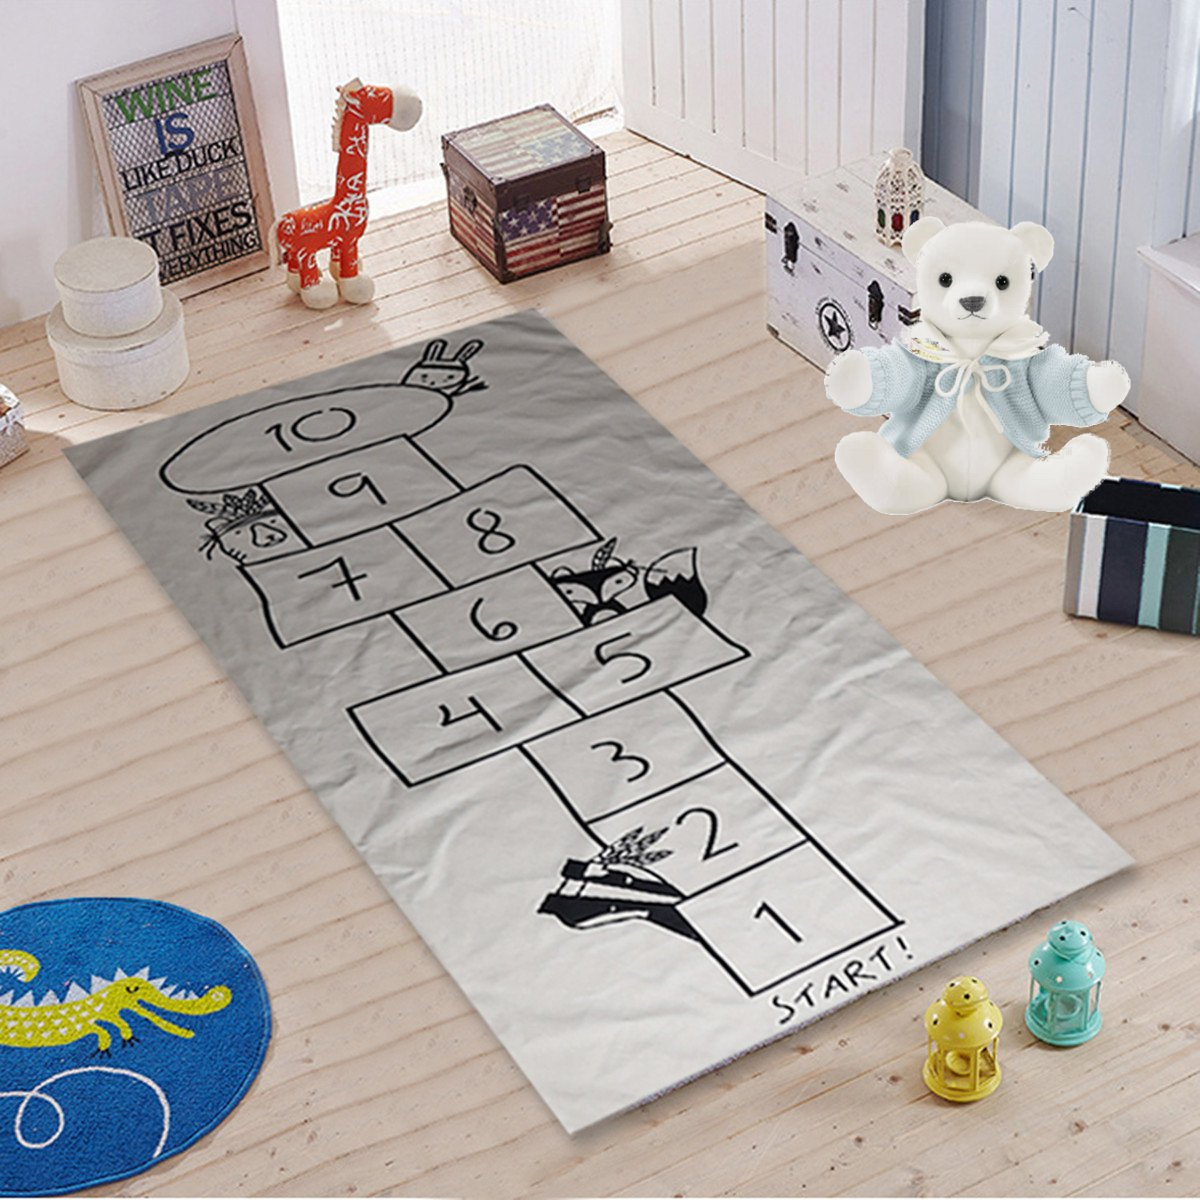 Kids Activity Play Mat,67'' Soft Cotton Baby Kids Game Gym Activity Play Mat Crawling Blanket Floor Rug,Digital Checkers design